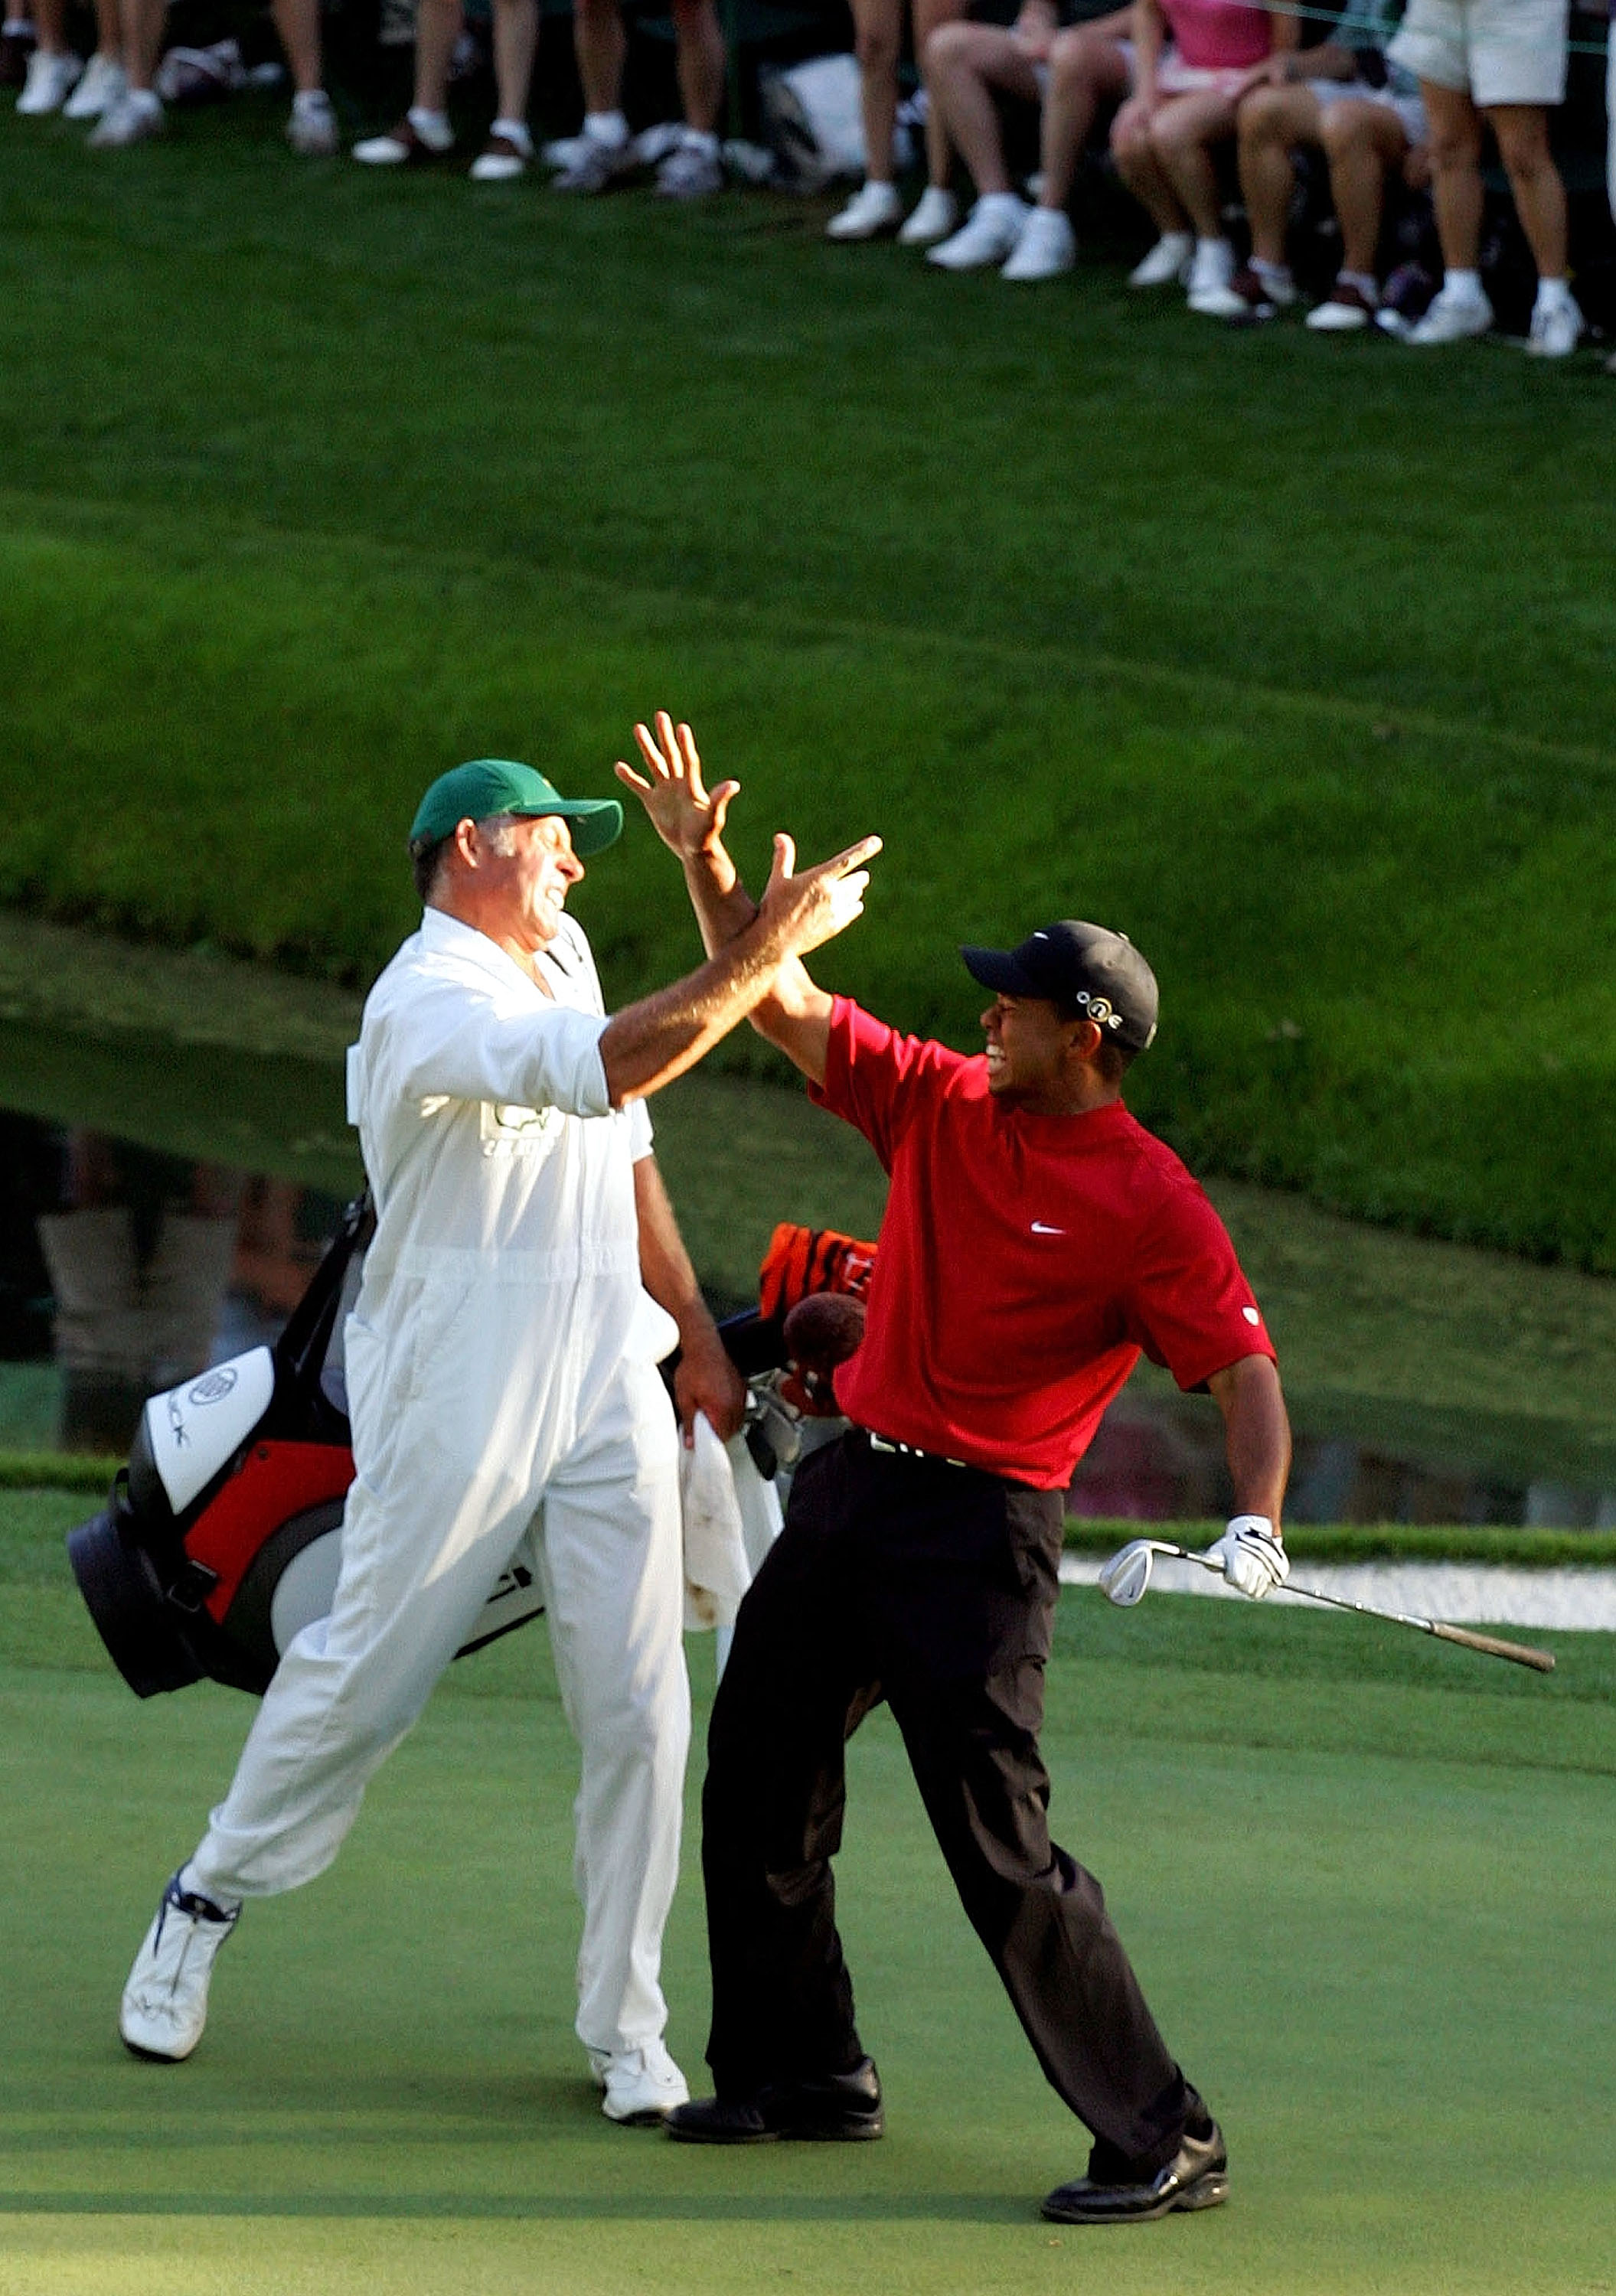 AUGUSTA, GA - APRIL 10:  Tiger Woods and his caddie, Steve Williams, celebrate after Woods chipped in for birdie on the 16th hole during the final round of The Masters at the Augusta National Golf Club on April 10, 2005 in Augusta, Georgia.  (Photo by Har